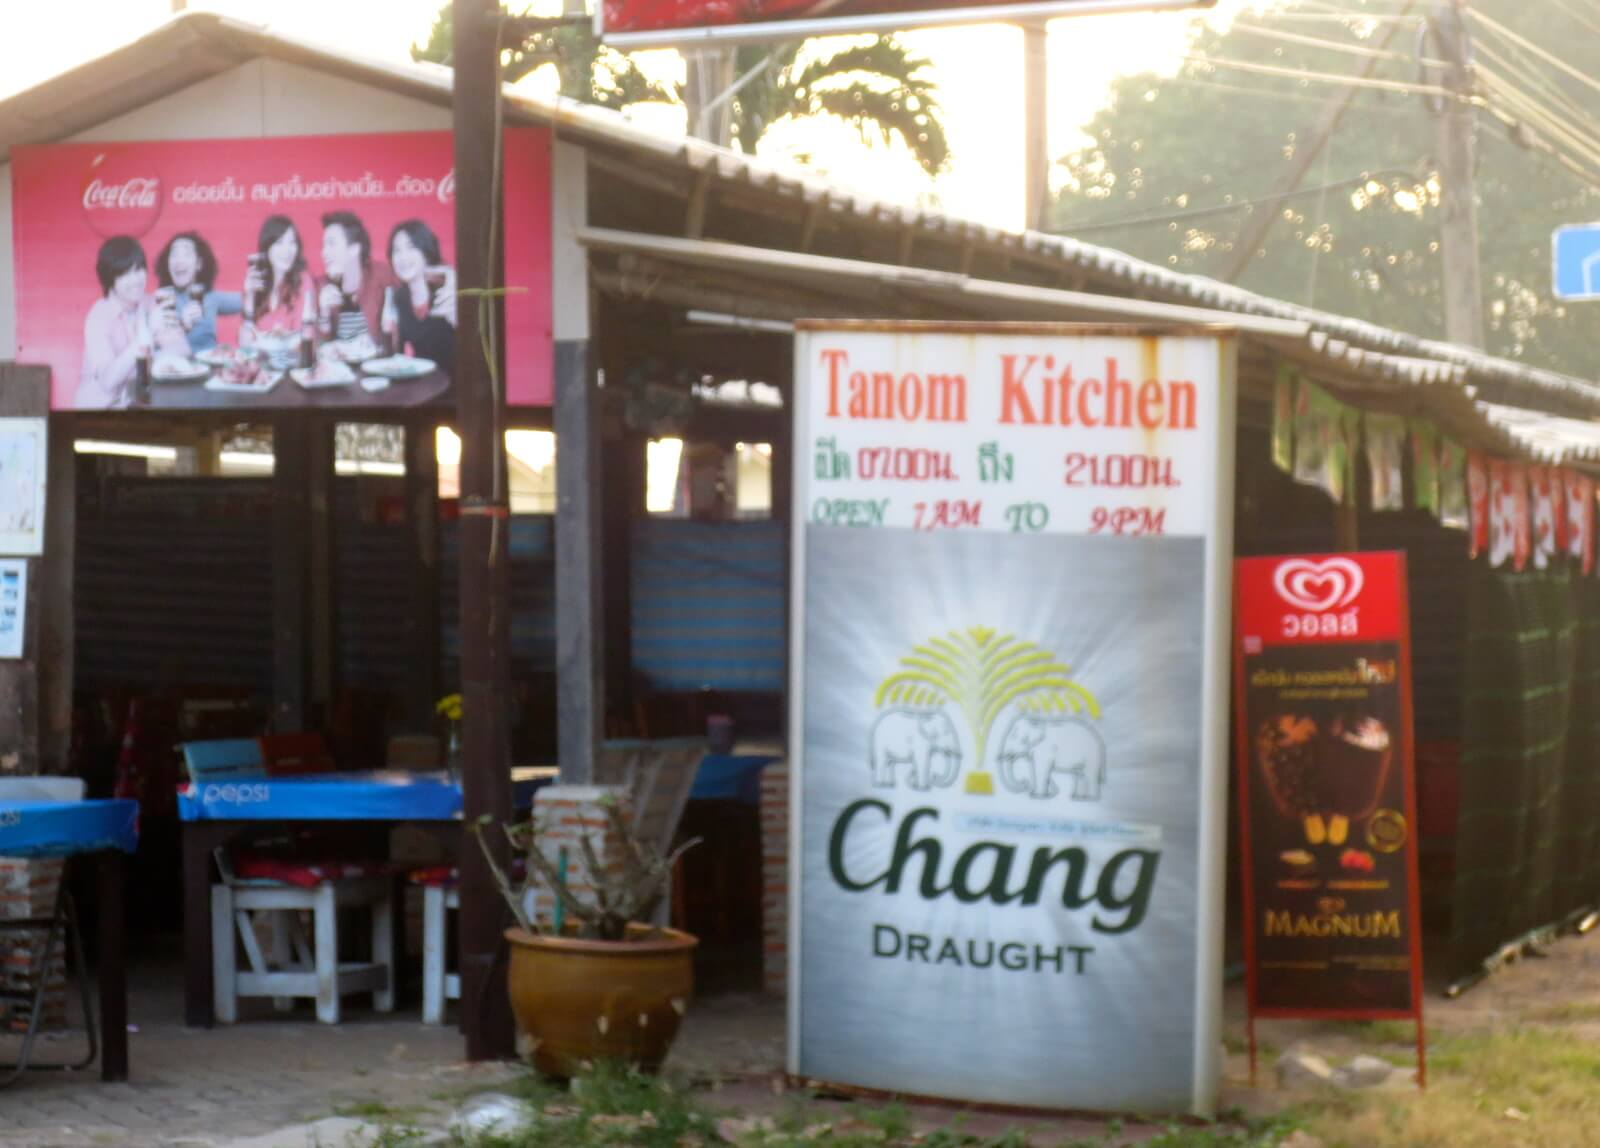 Thanom Kitchen in Mae Rumphueng, Thailand